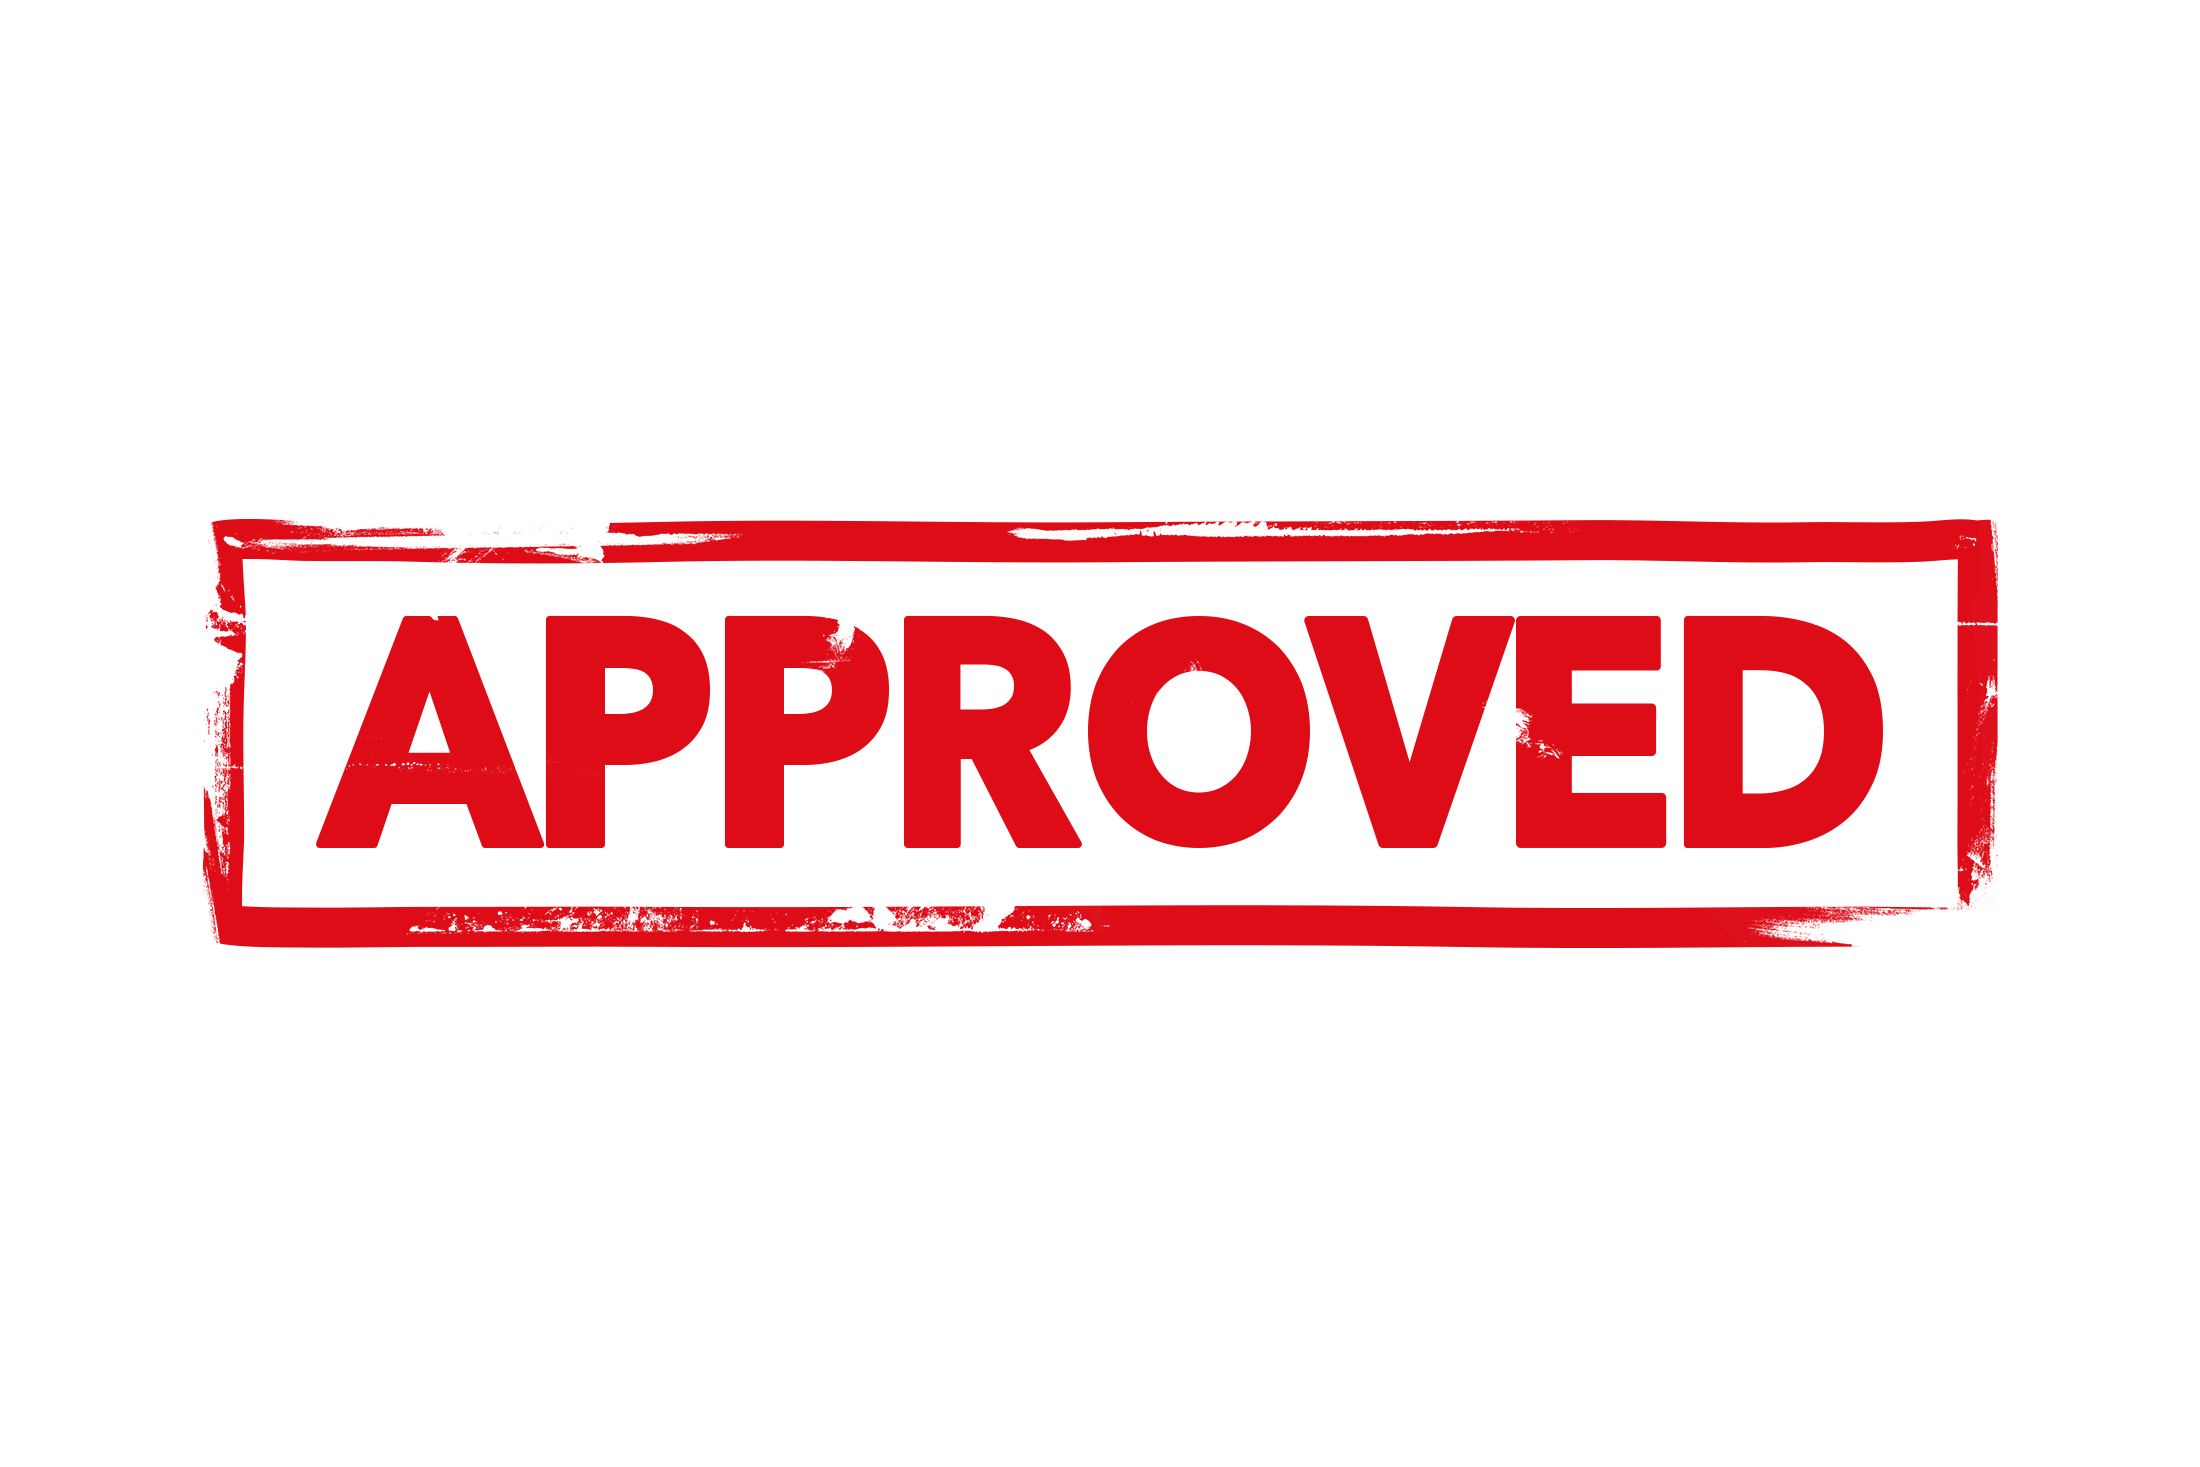 Approved stamp PSD